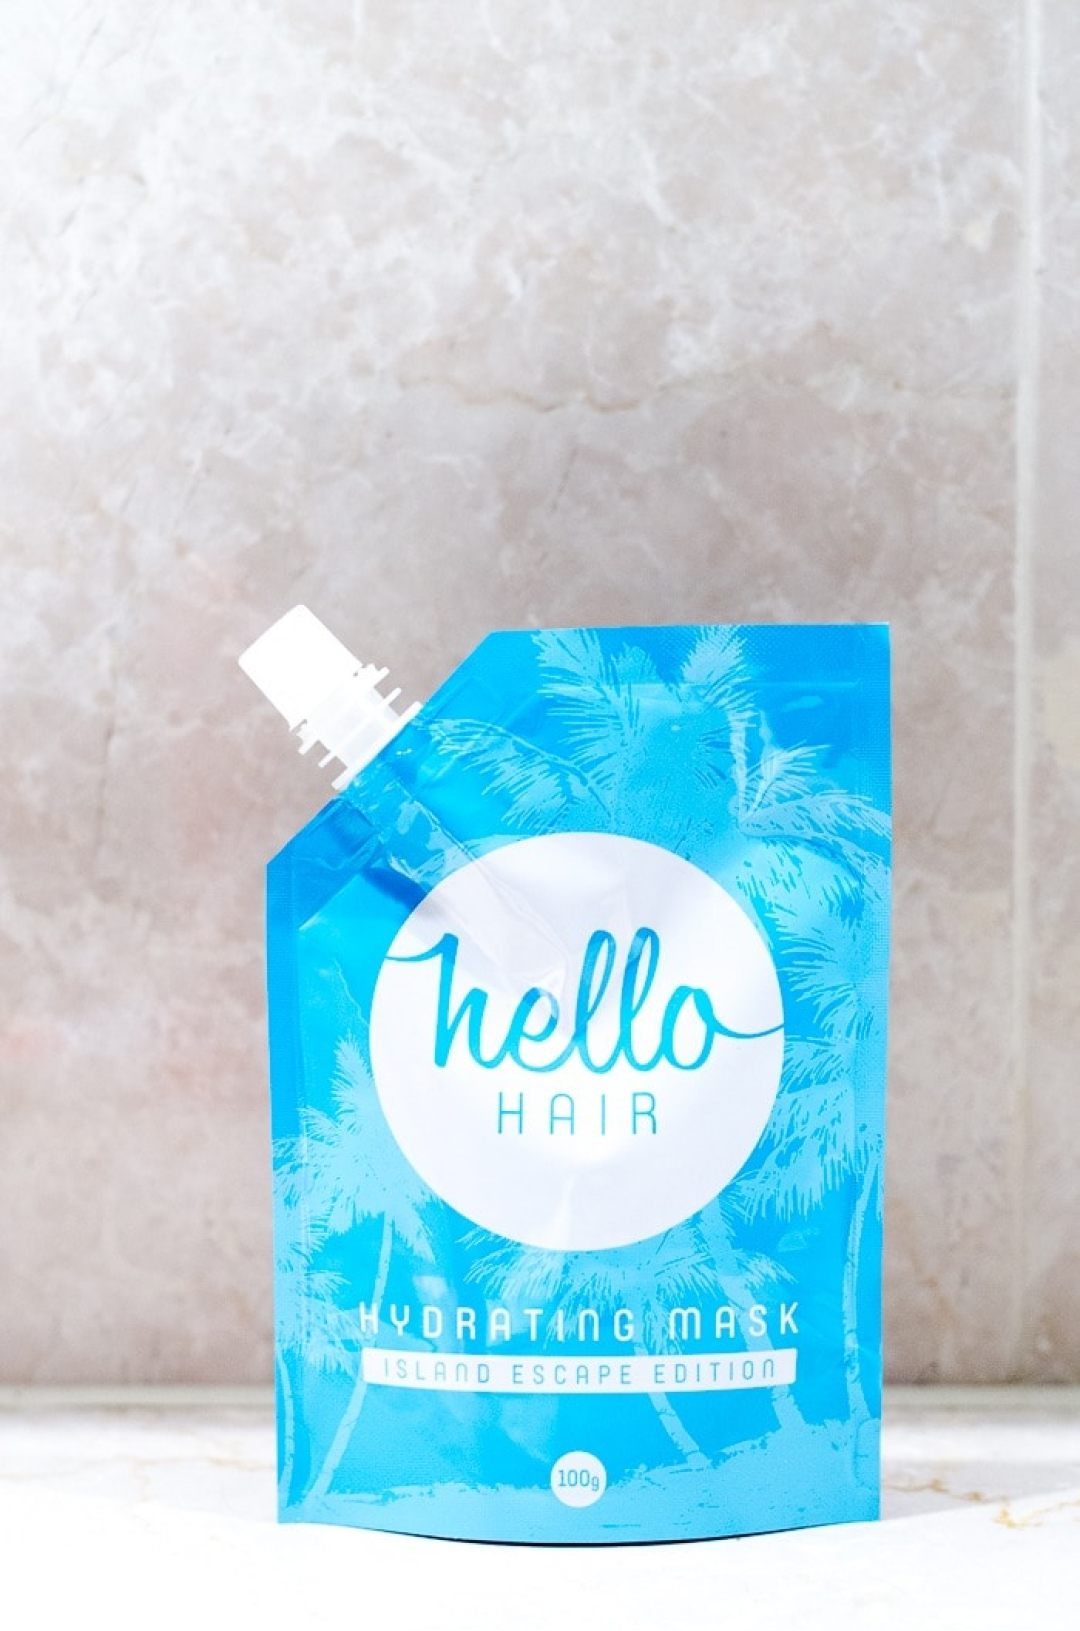 Hello Hair Mask Review